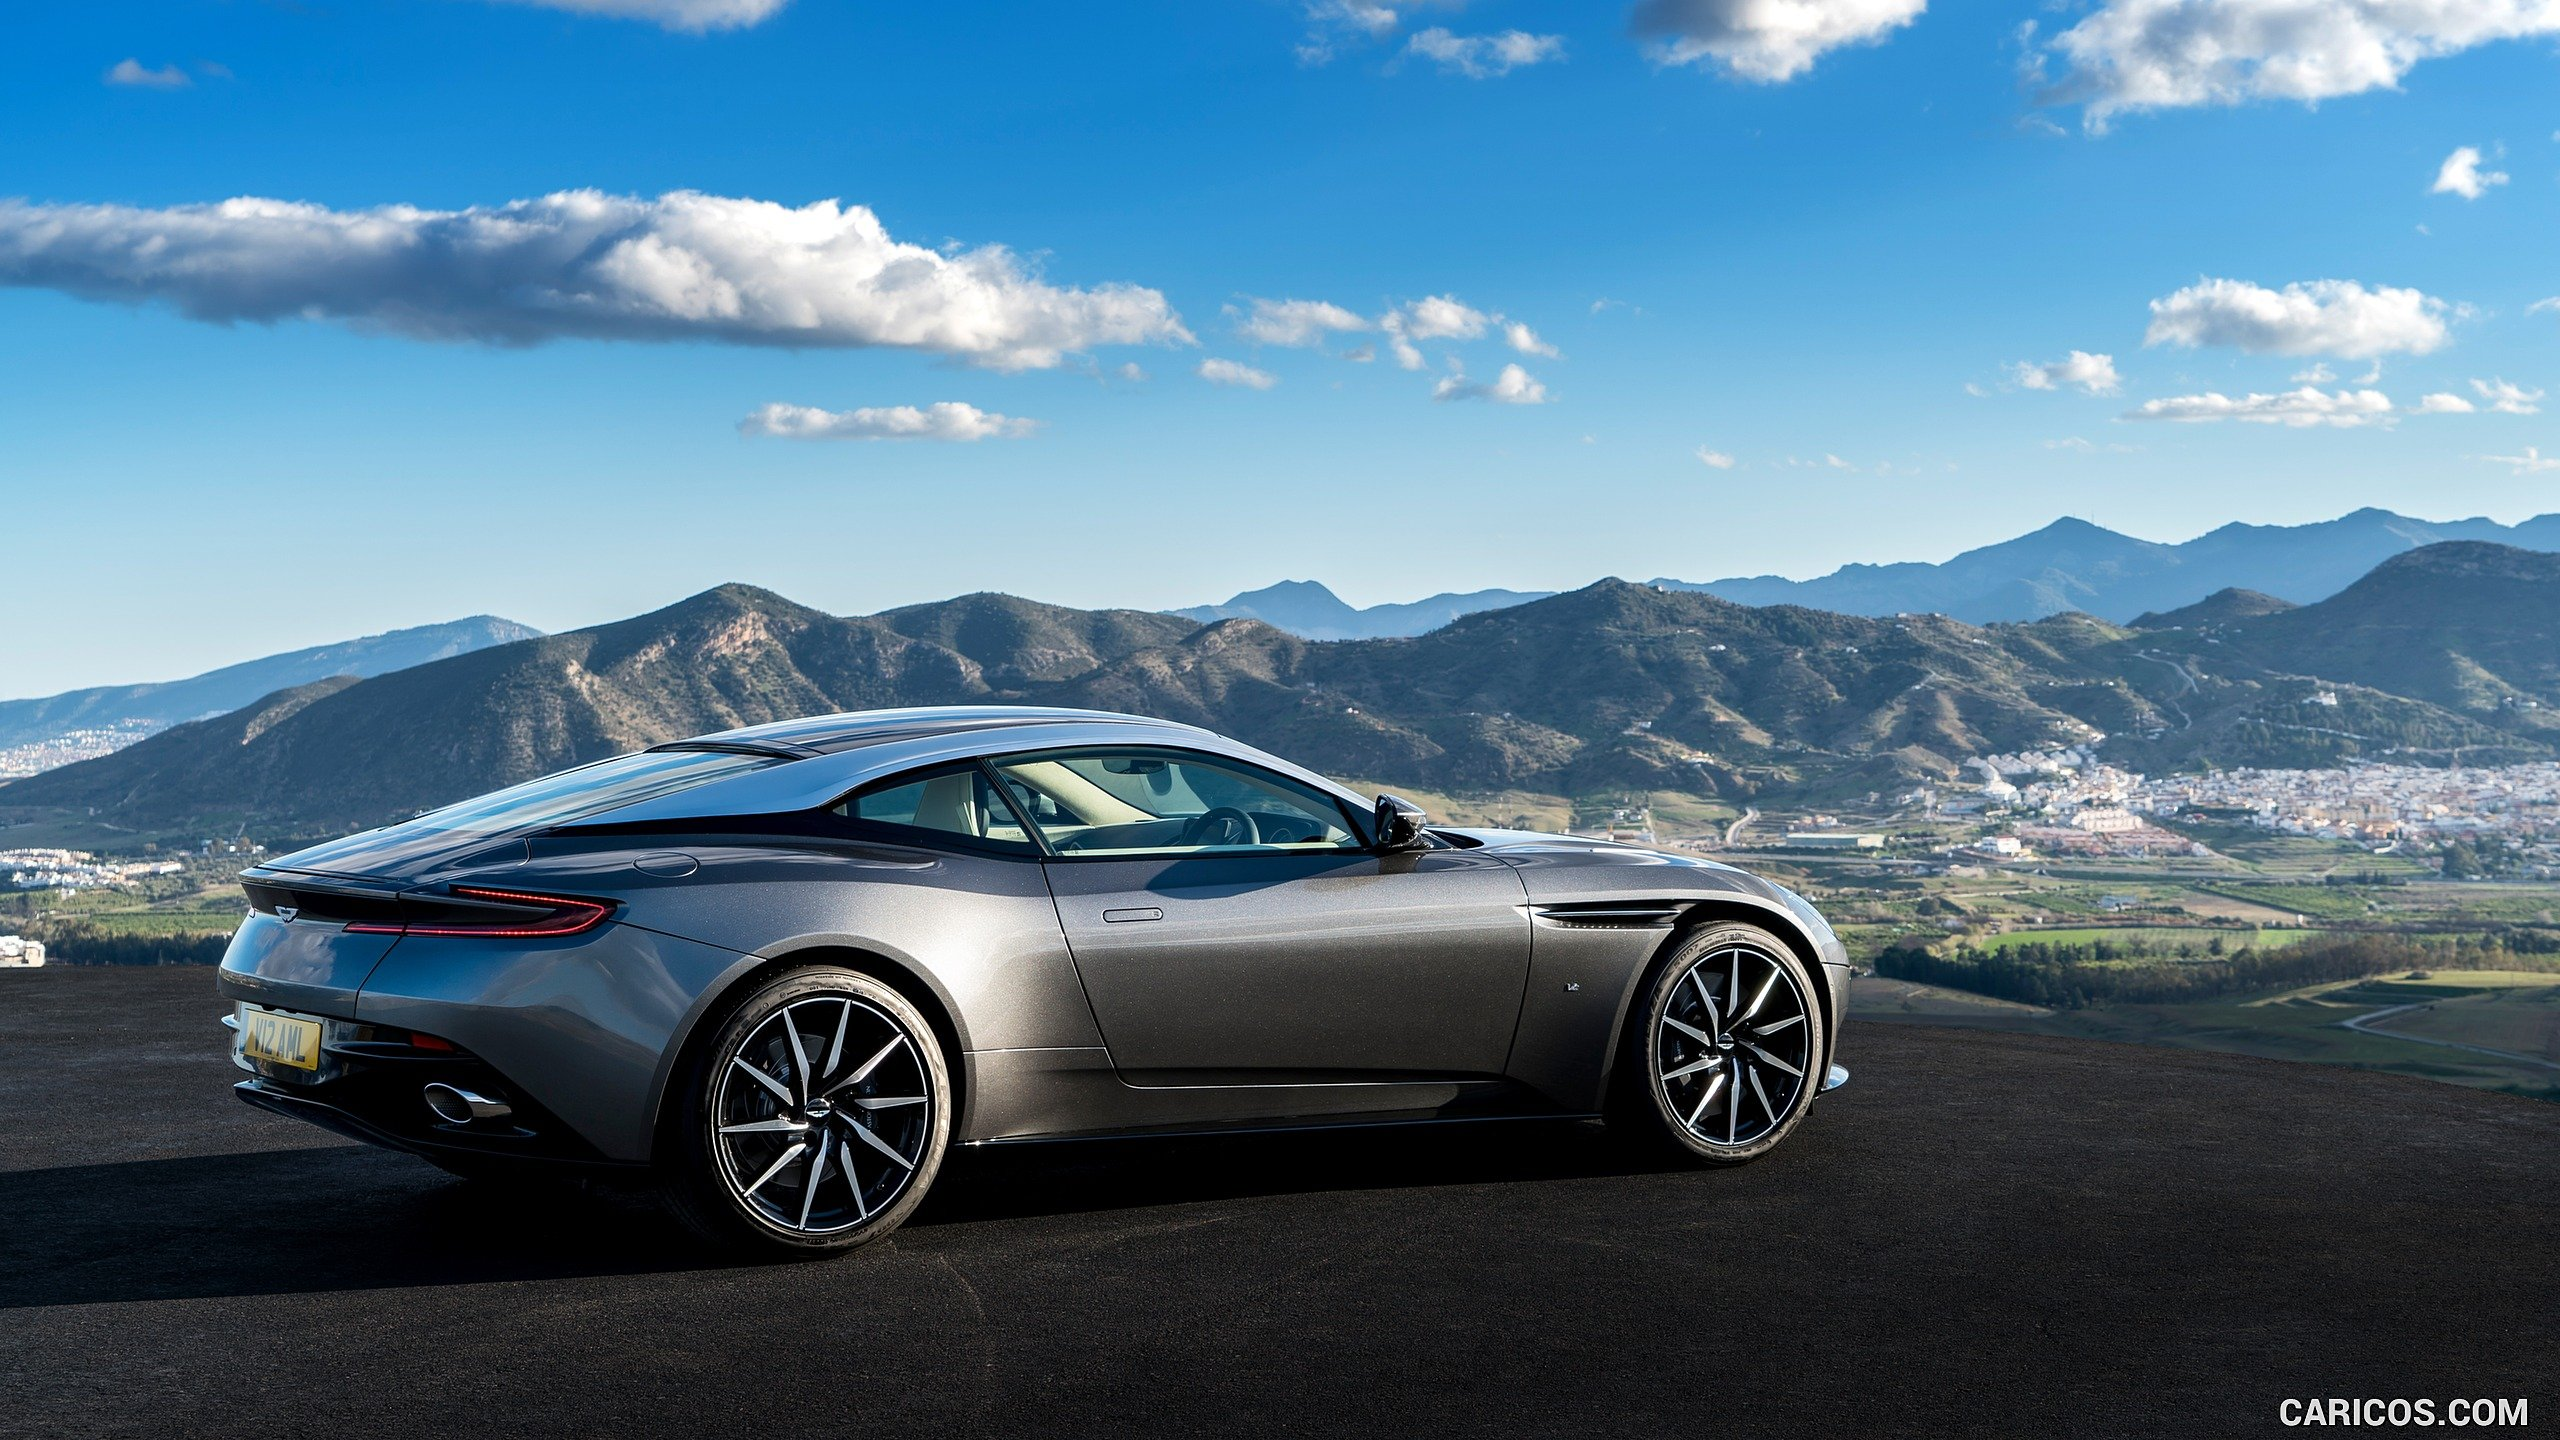 2017 Aston Martin DB11   Side HD Wallpaper 15 2560x1440